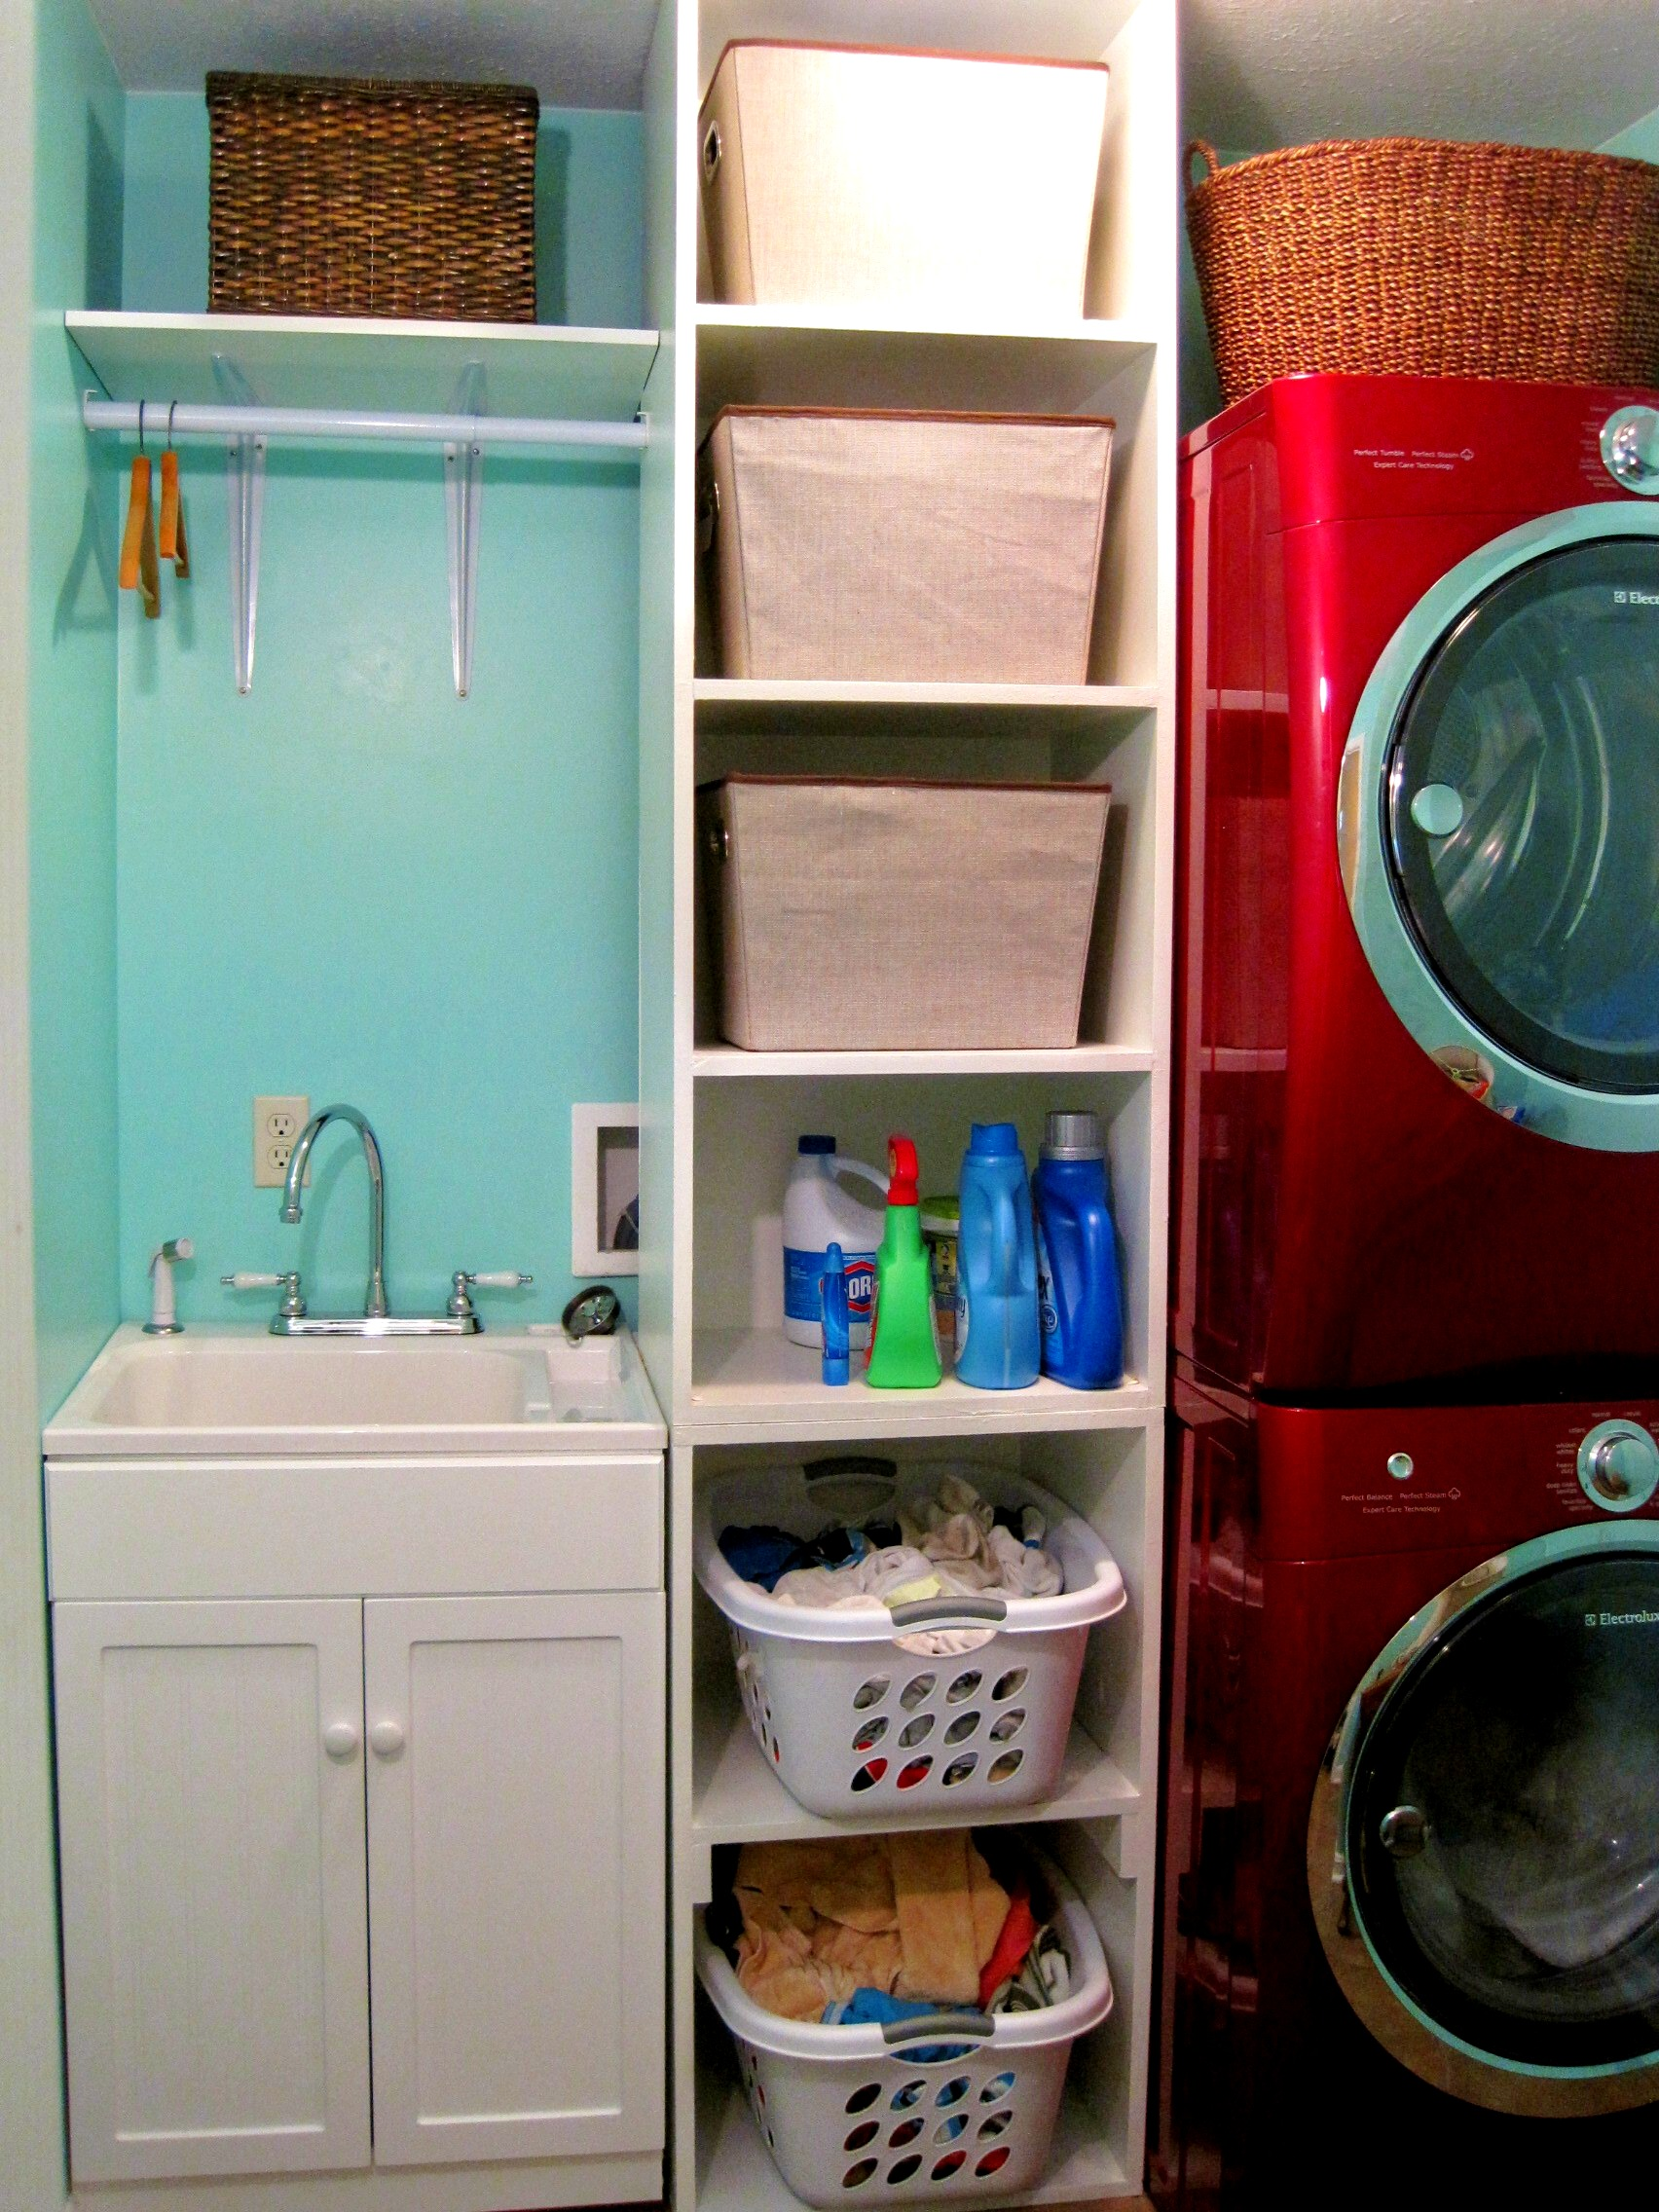 Laundry room shelving ideas for small spaces you need to see homesfeed - Laundry rooms for small spaces decoration ...